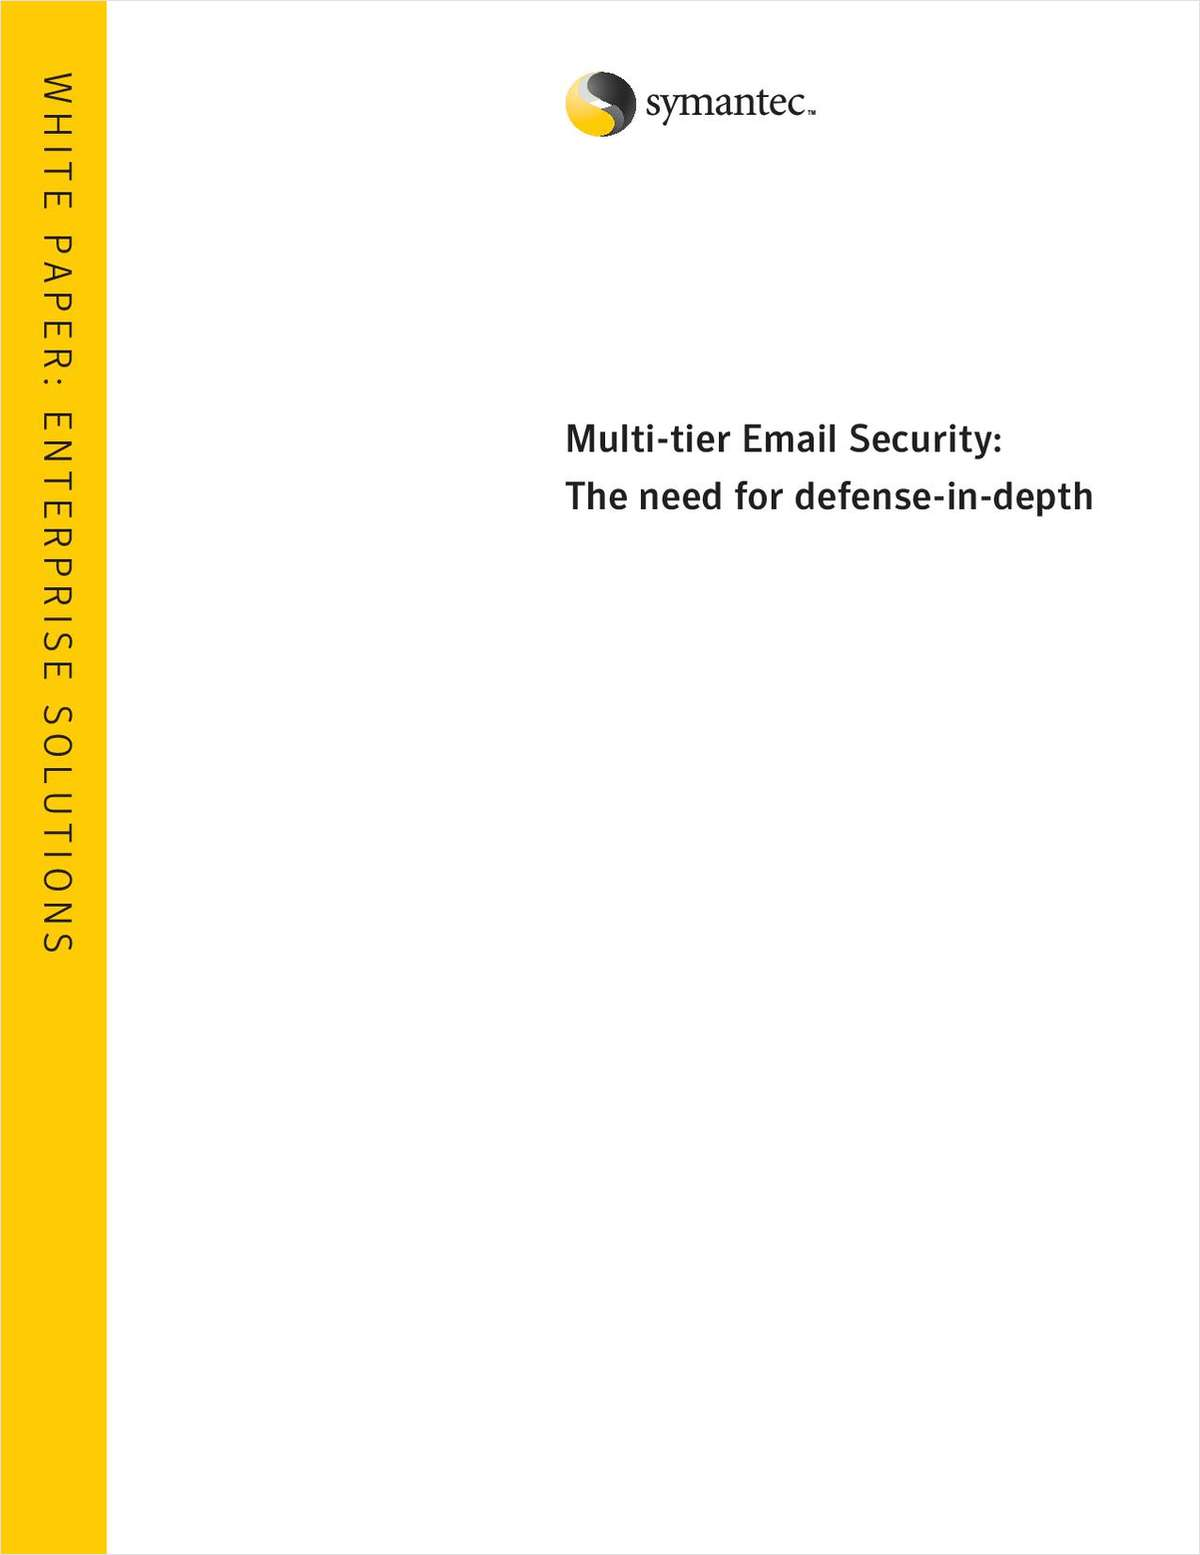 Multi-Tier Email Security: The Need for Defense-in-Depth